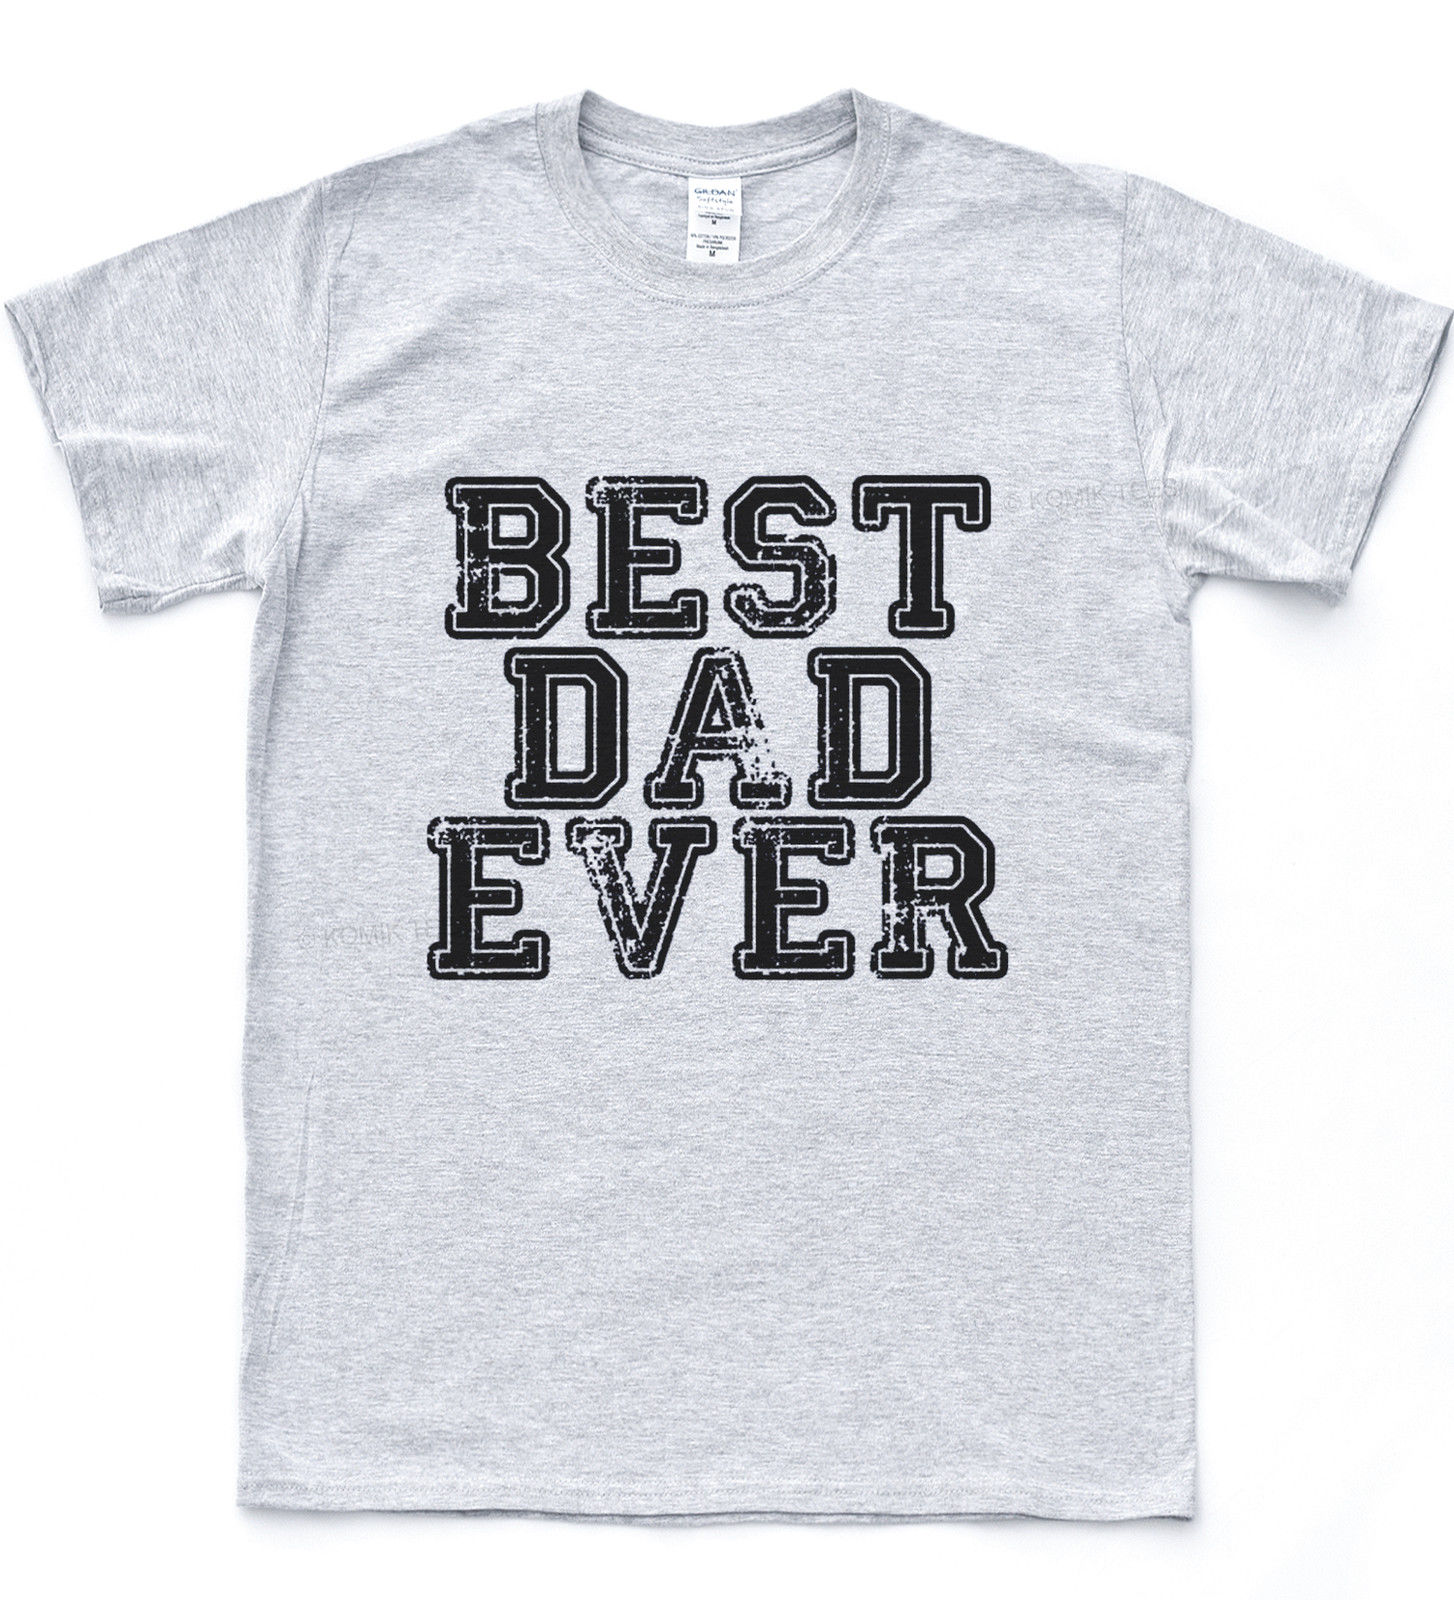 Best Dad Ever T-shirt Award Great Father Day Tee Special Amazing Prize Top